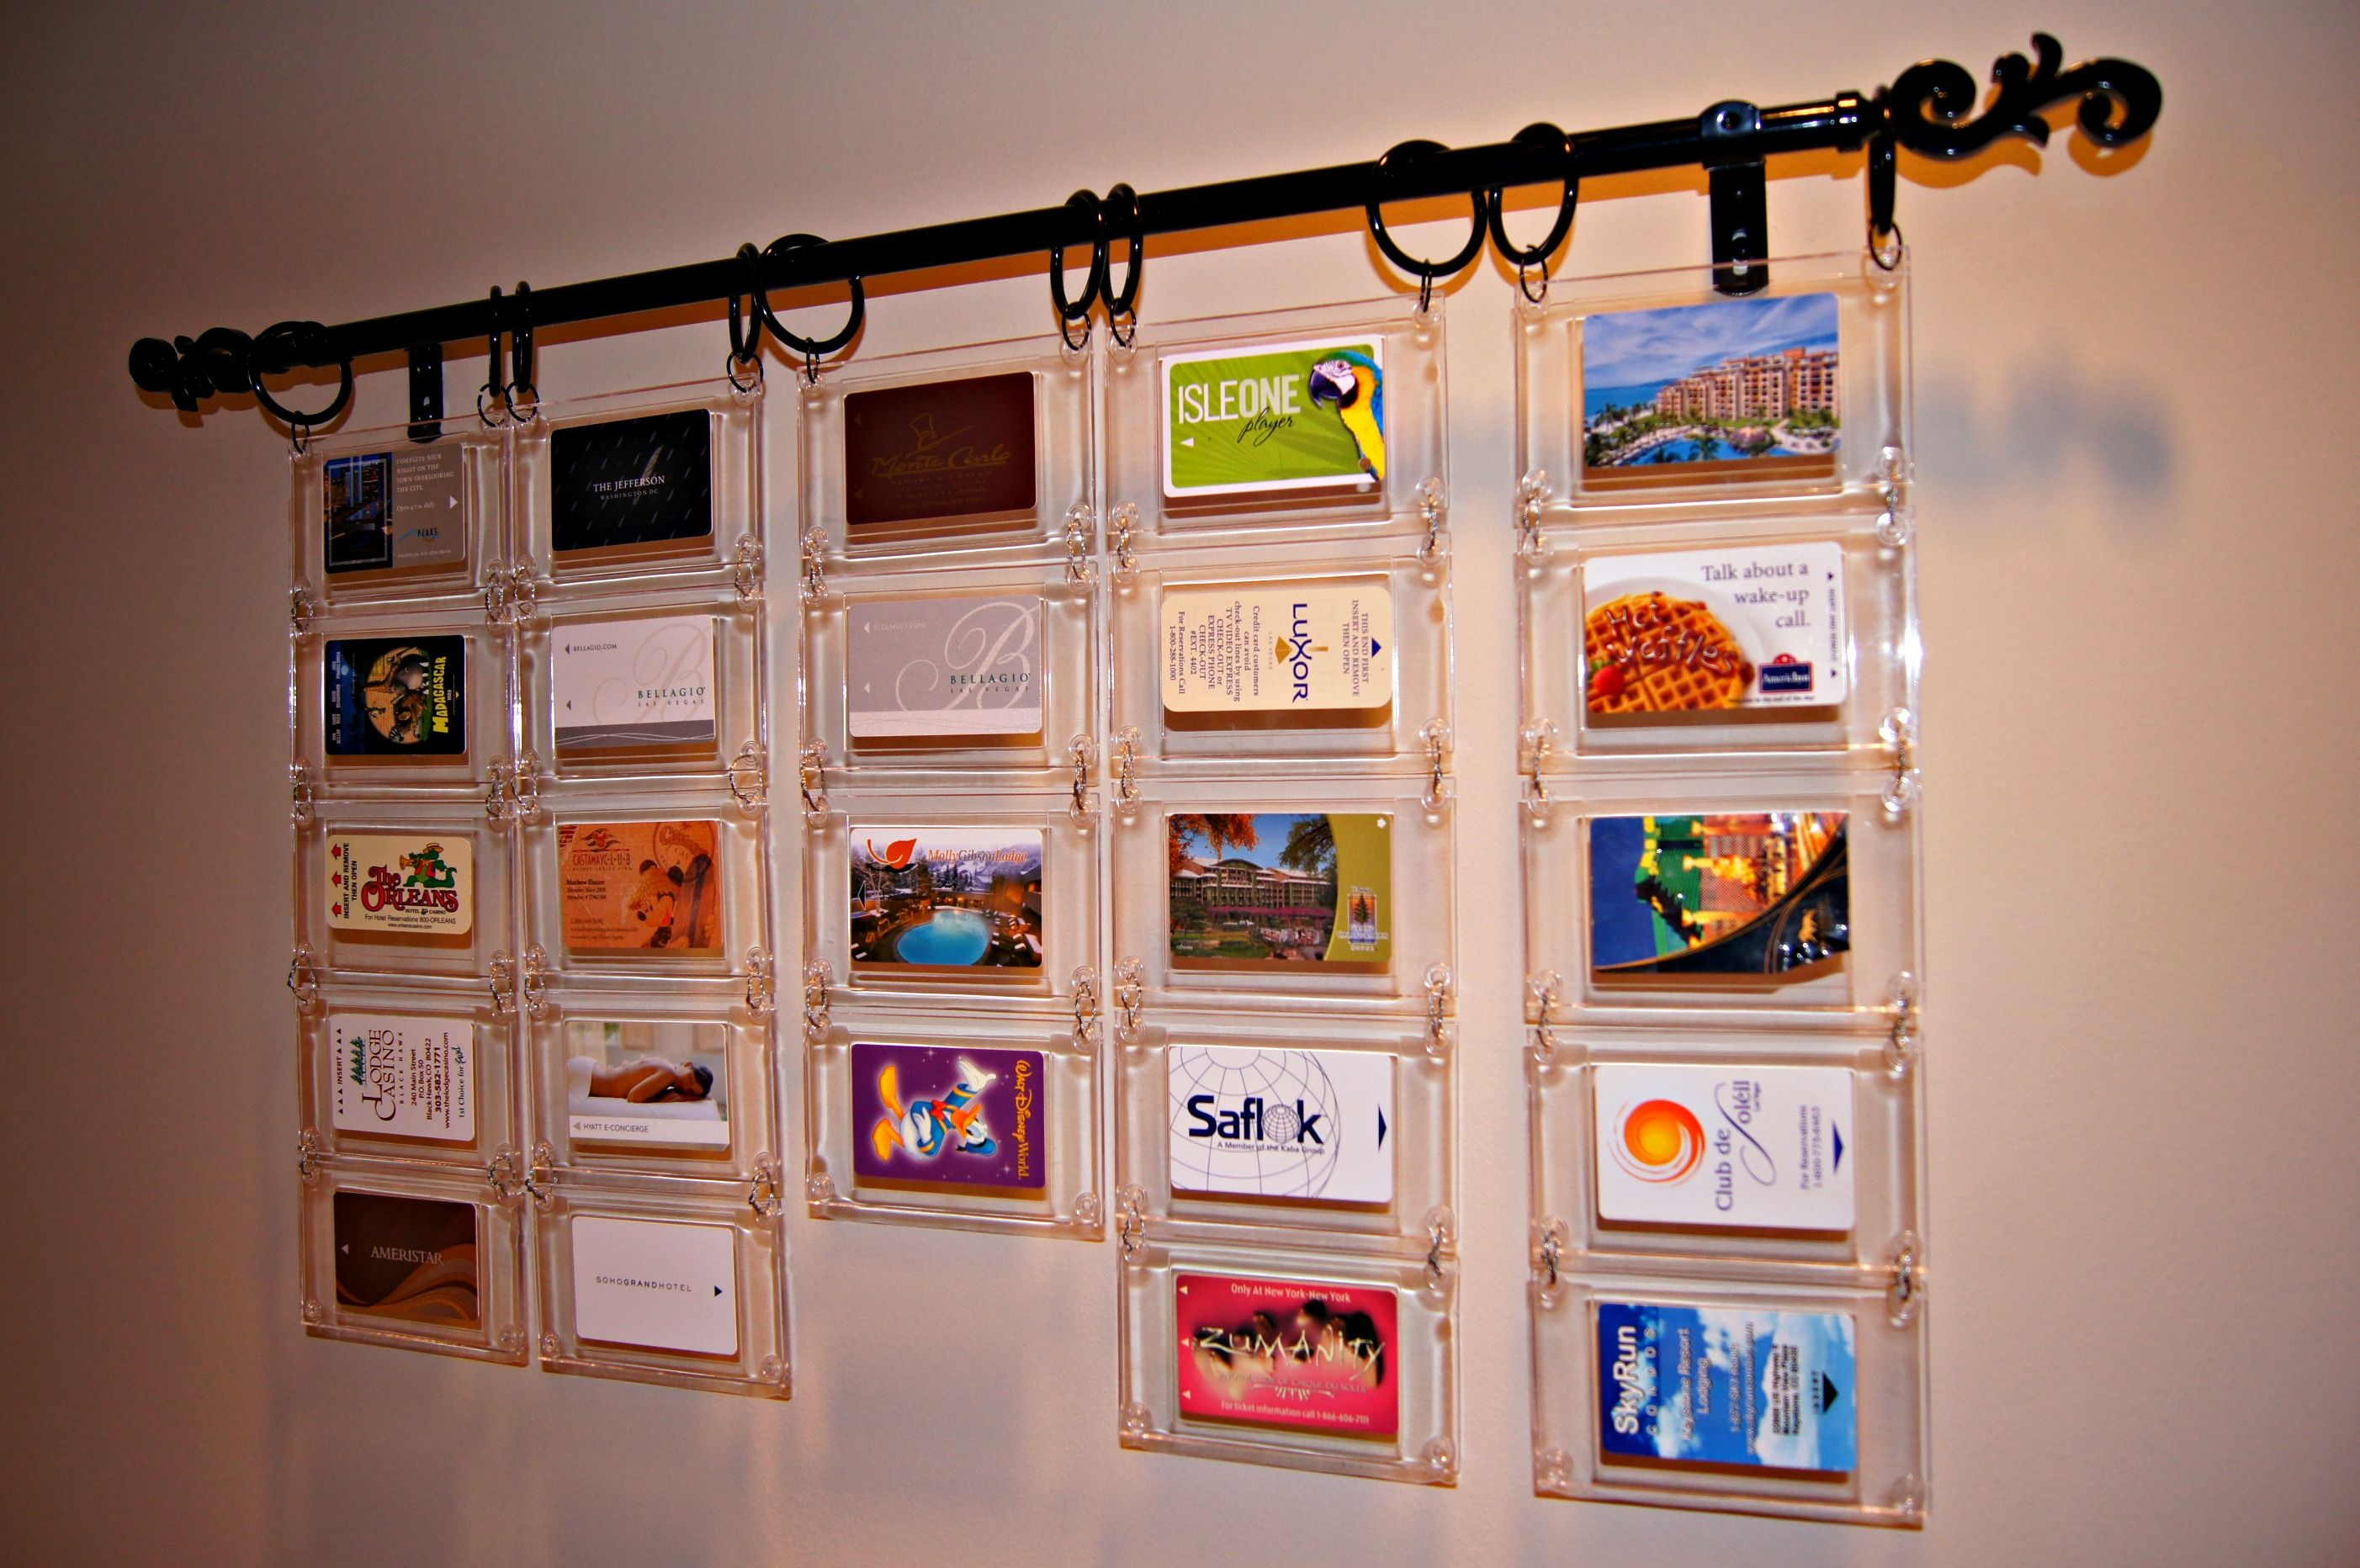 I Like Collecting Hotel Key Cards From Our Travels This Is An Idea I Came Up With To Display Them Wh Hotel Key Cards Hotel Card Business Cards Collection